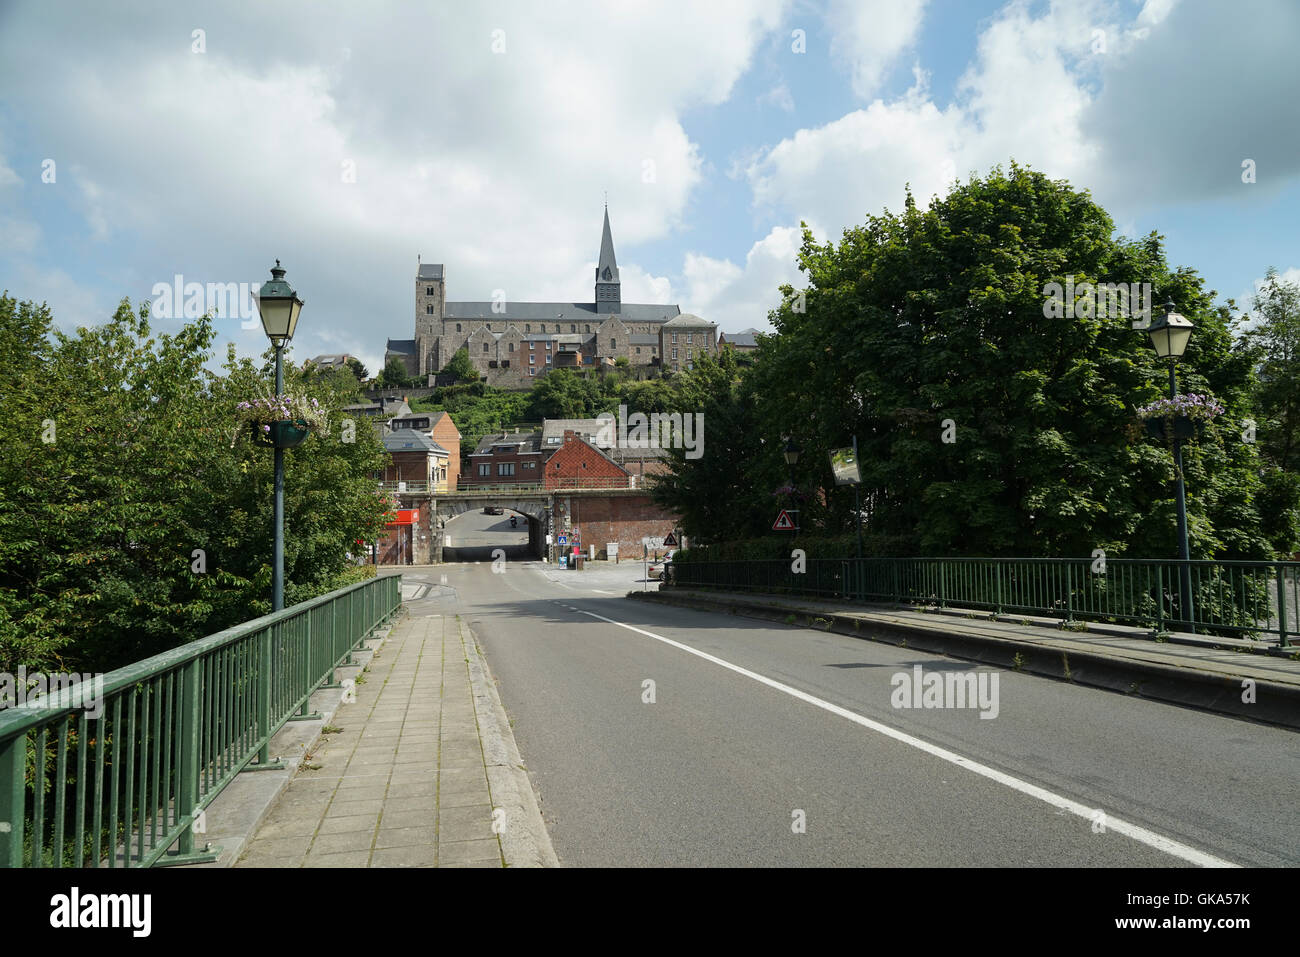 Collégiale saint Ursmer à Lobbes dominates the Skyline in this View from the Bridge over the River Sambre - Stock Image